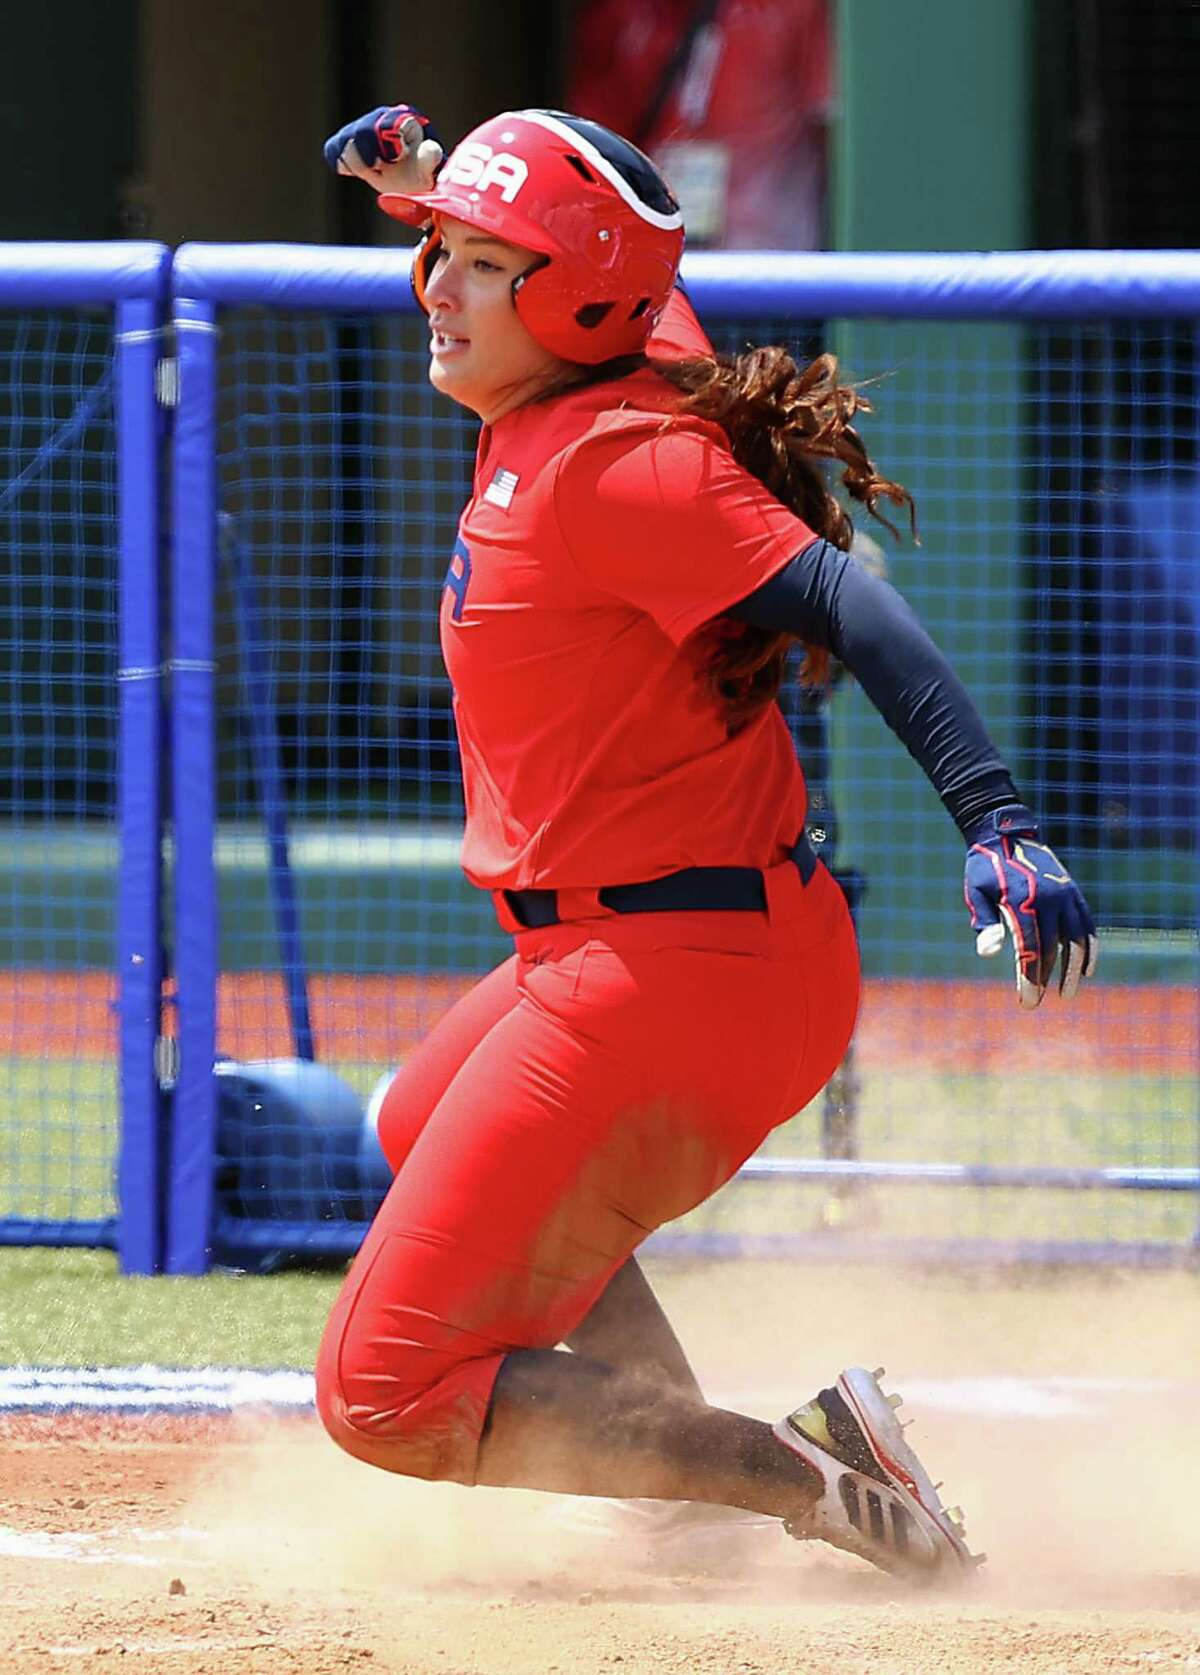 FUKUSHIMA, JAPAN - JULY 21: Valerie Arioto #20 of Team United States finishes her slide into home plate to score in the fourth inning against Team Italy during the Tokyo 2020 Olympic Games at Fukushima Azuma Baseball Stadium on July 21, 2021 in Fukushima, Japan. (Photo by Yuichi Masuda/Getty Images)